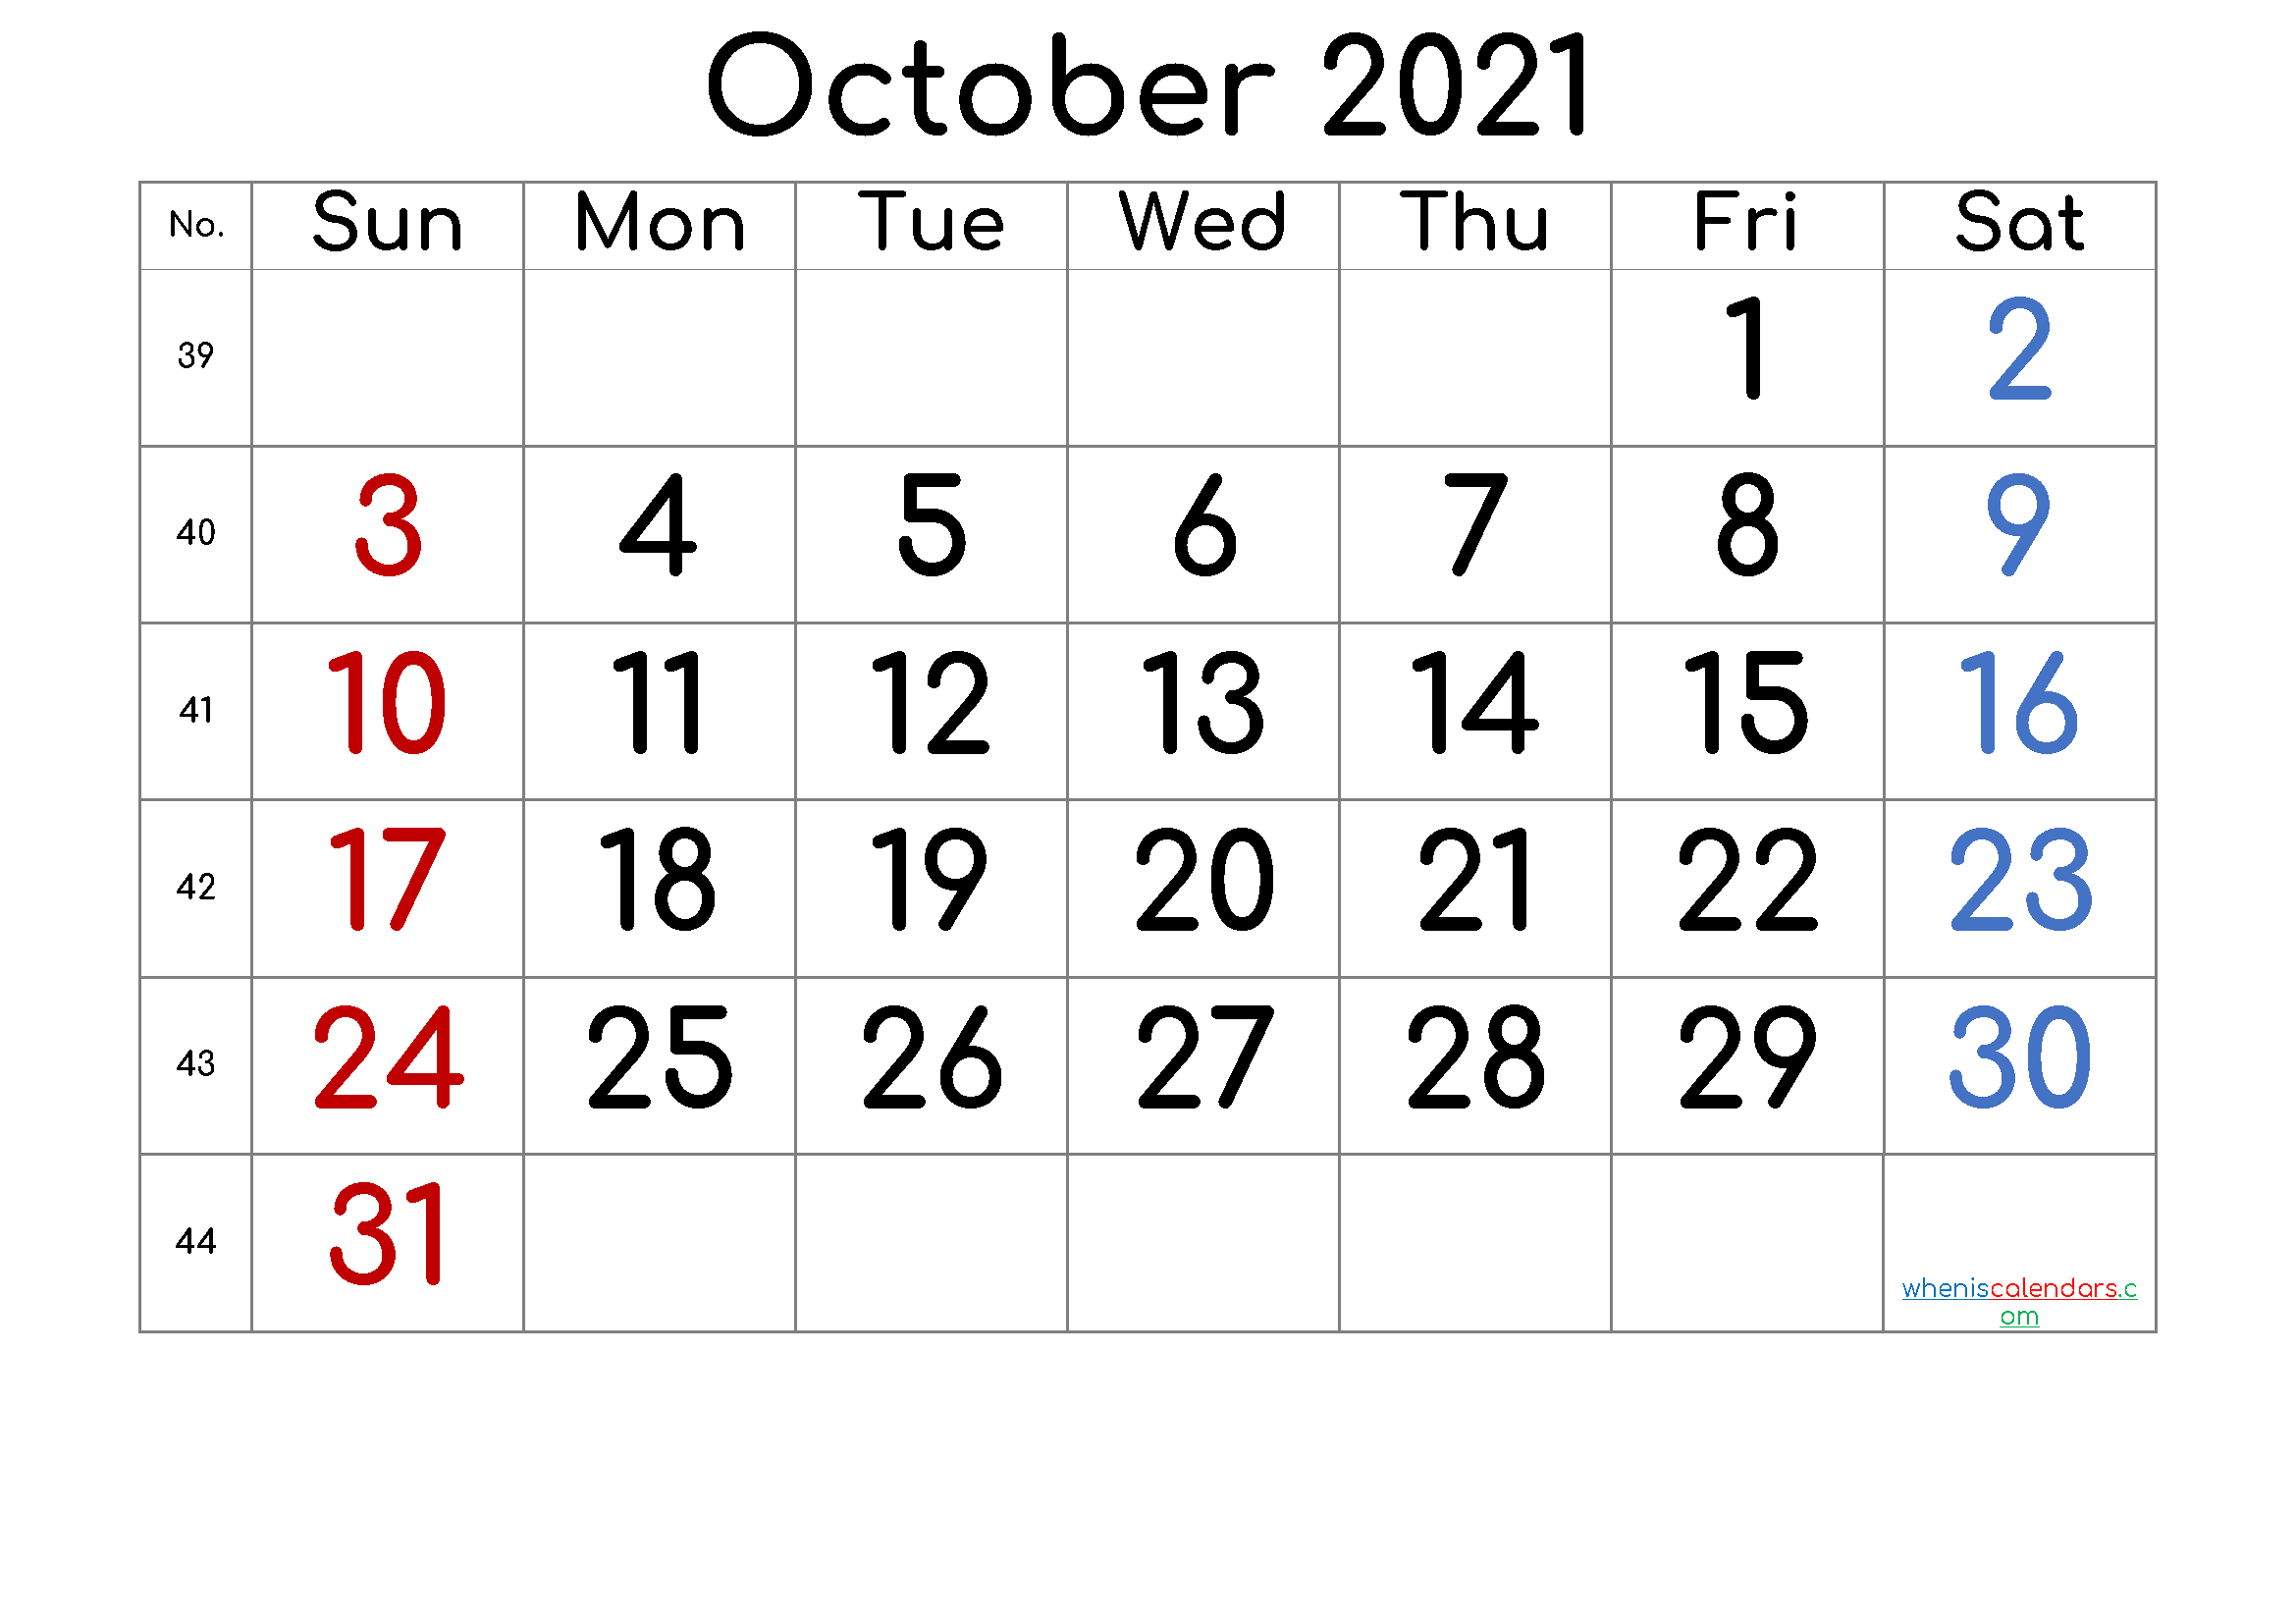 October 2021 Printable Calendar with Week Numbers